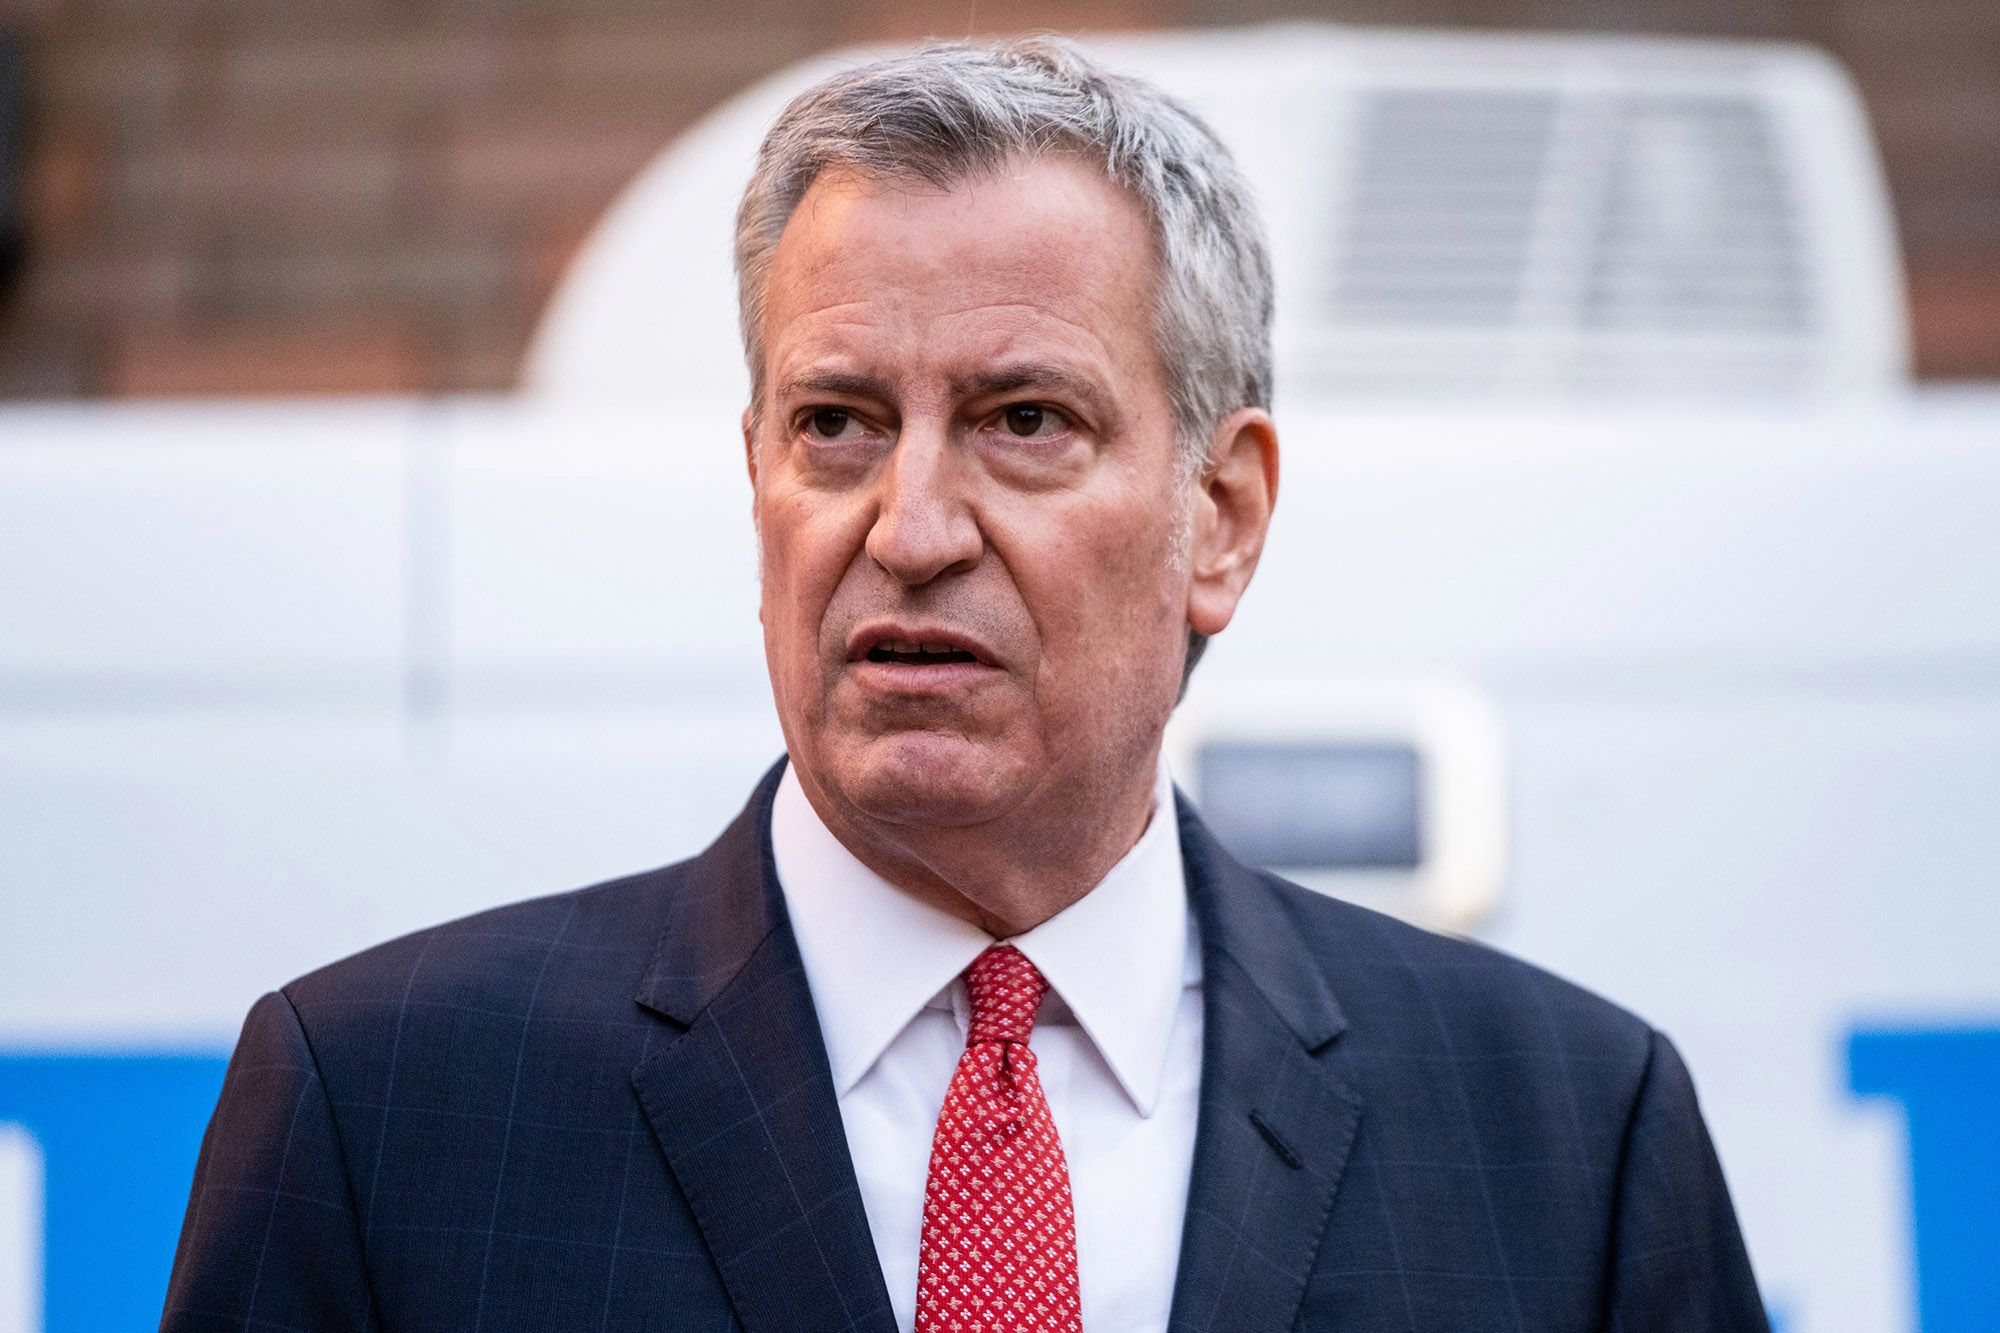 De Blasio Admits His Failure, Says He Doesn't Have A Plan on Reopening Schools